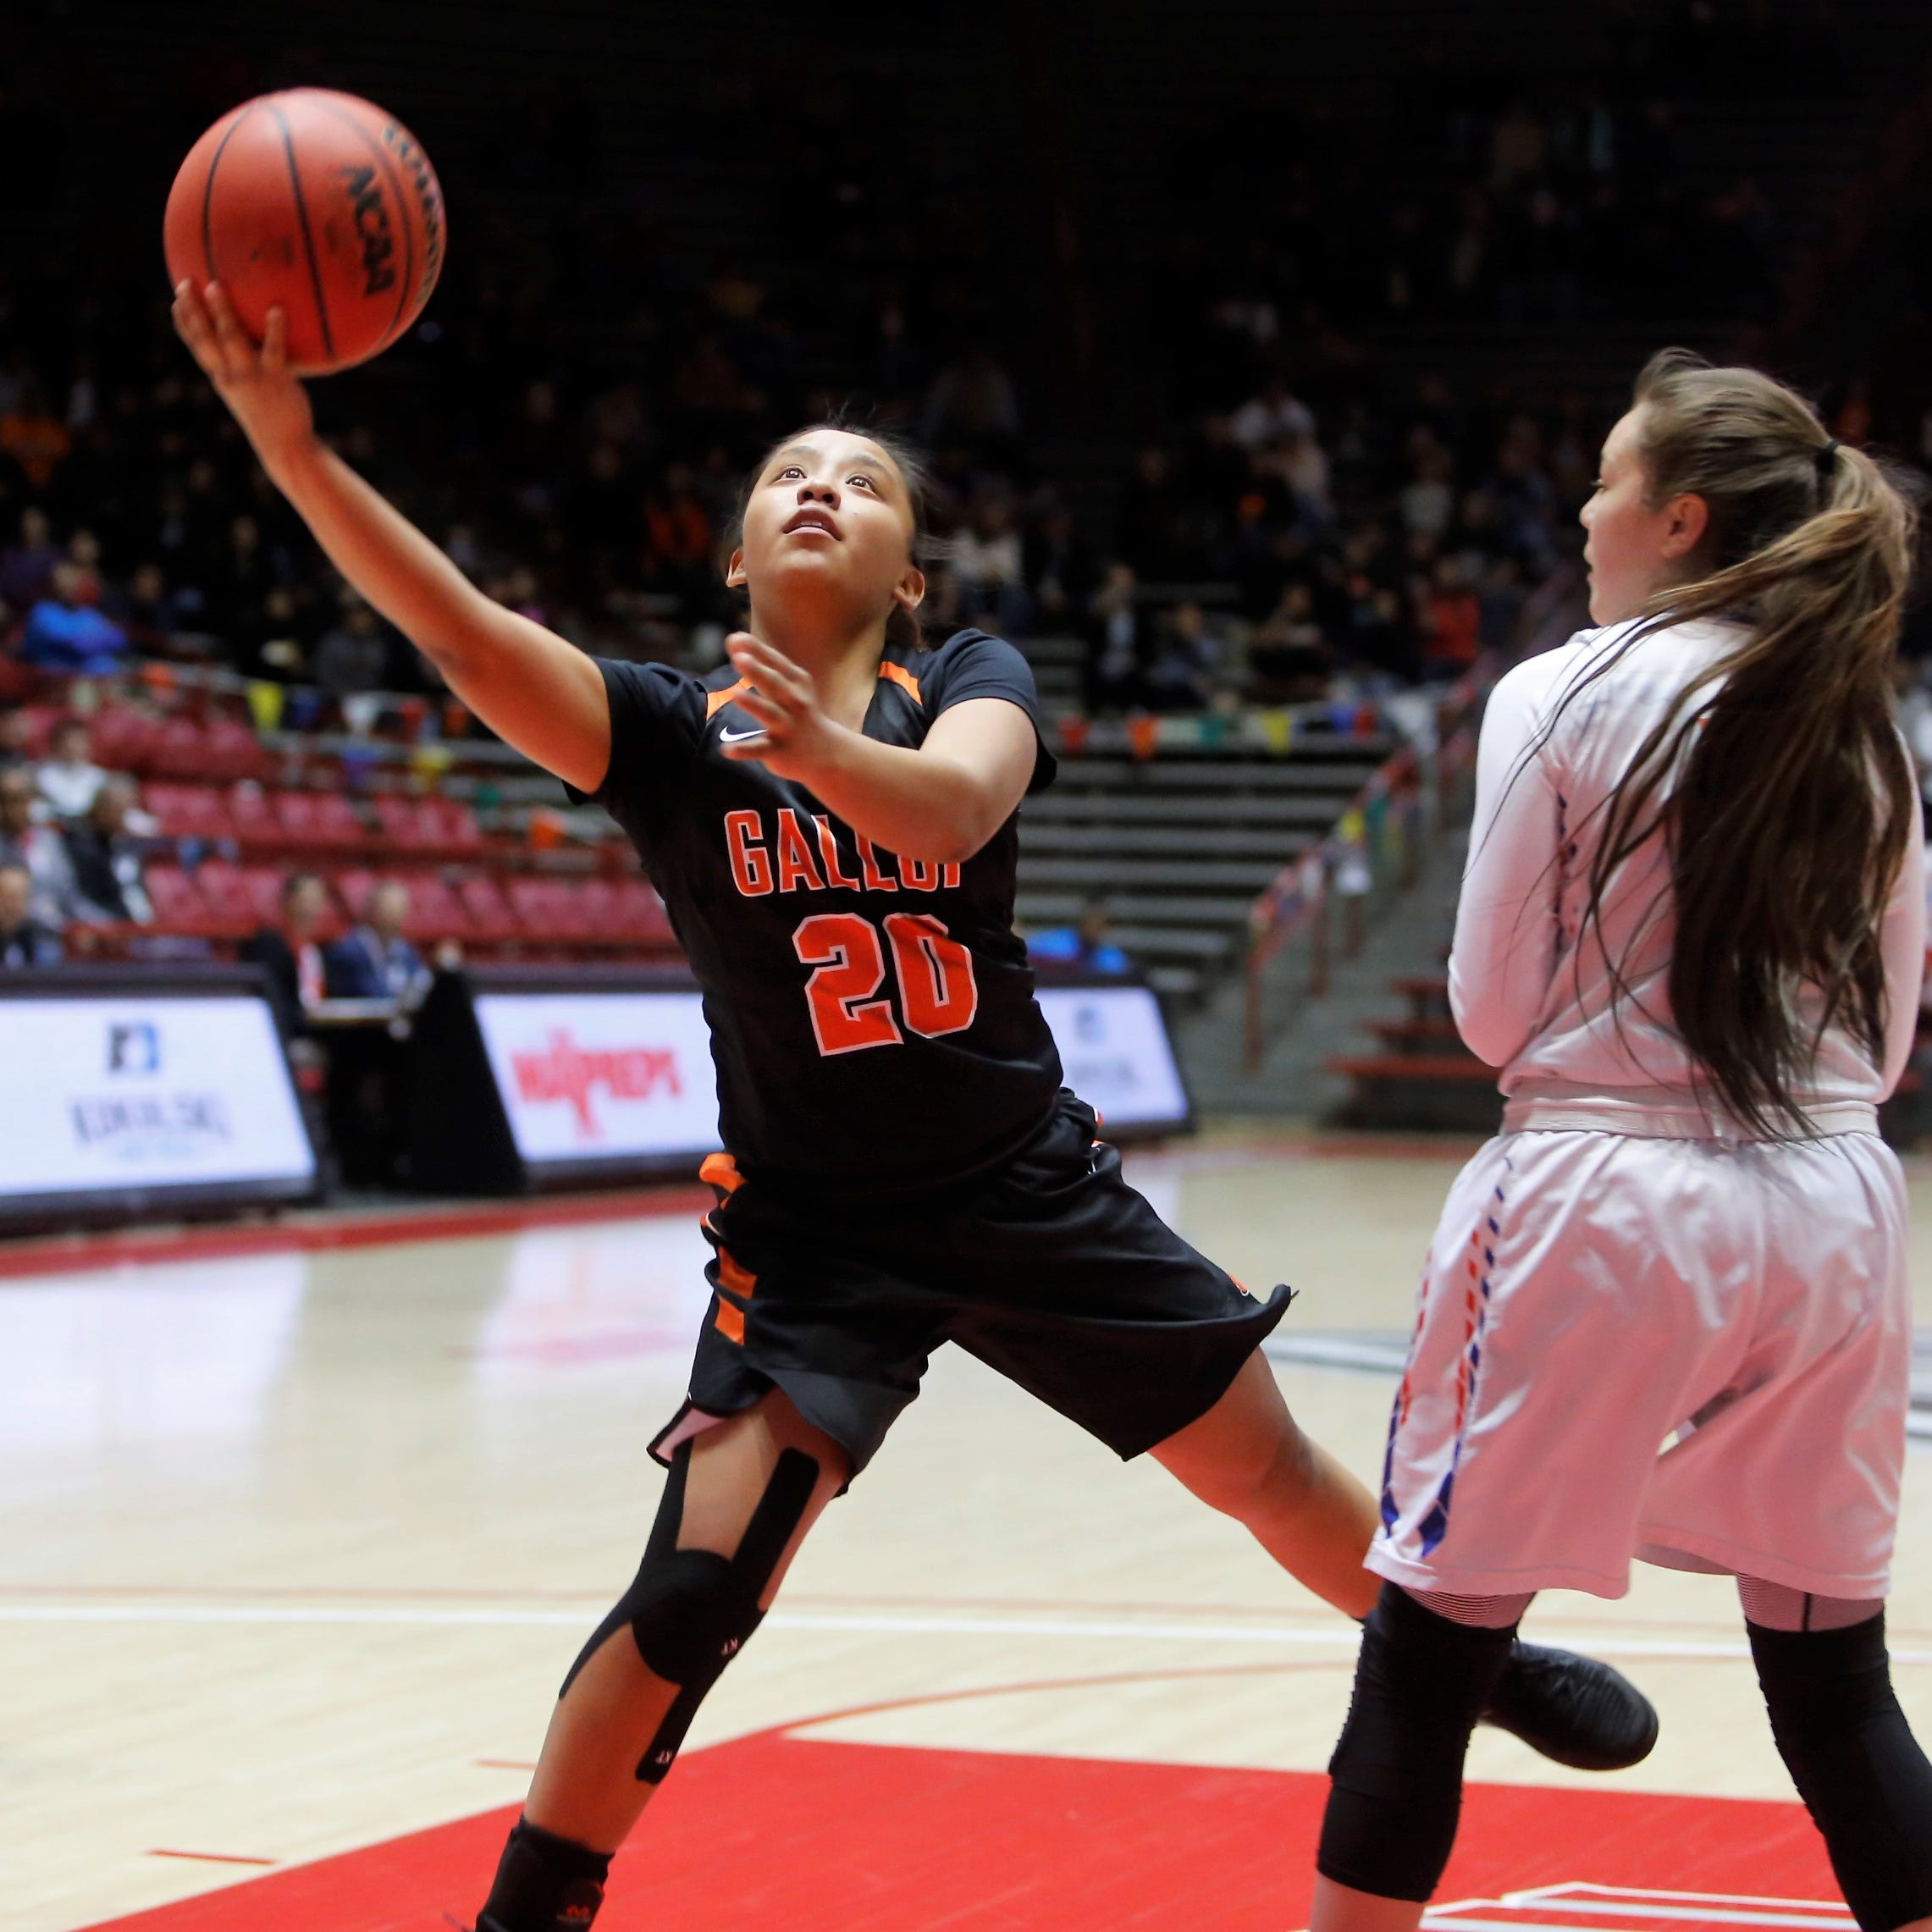 LIVE: NMAA State Basketball Tournament Updates - Day 3: W. Mesa tops PV in OT